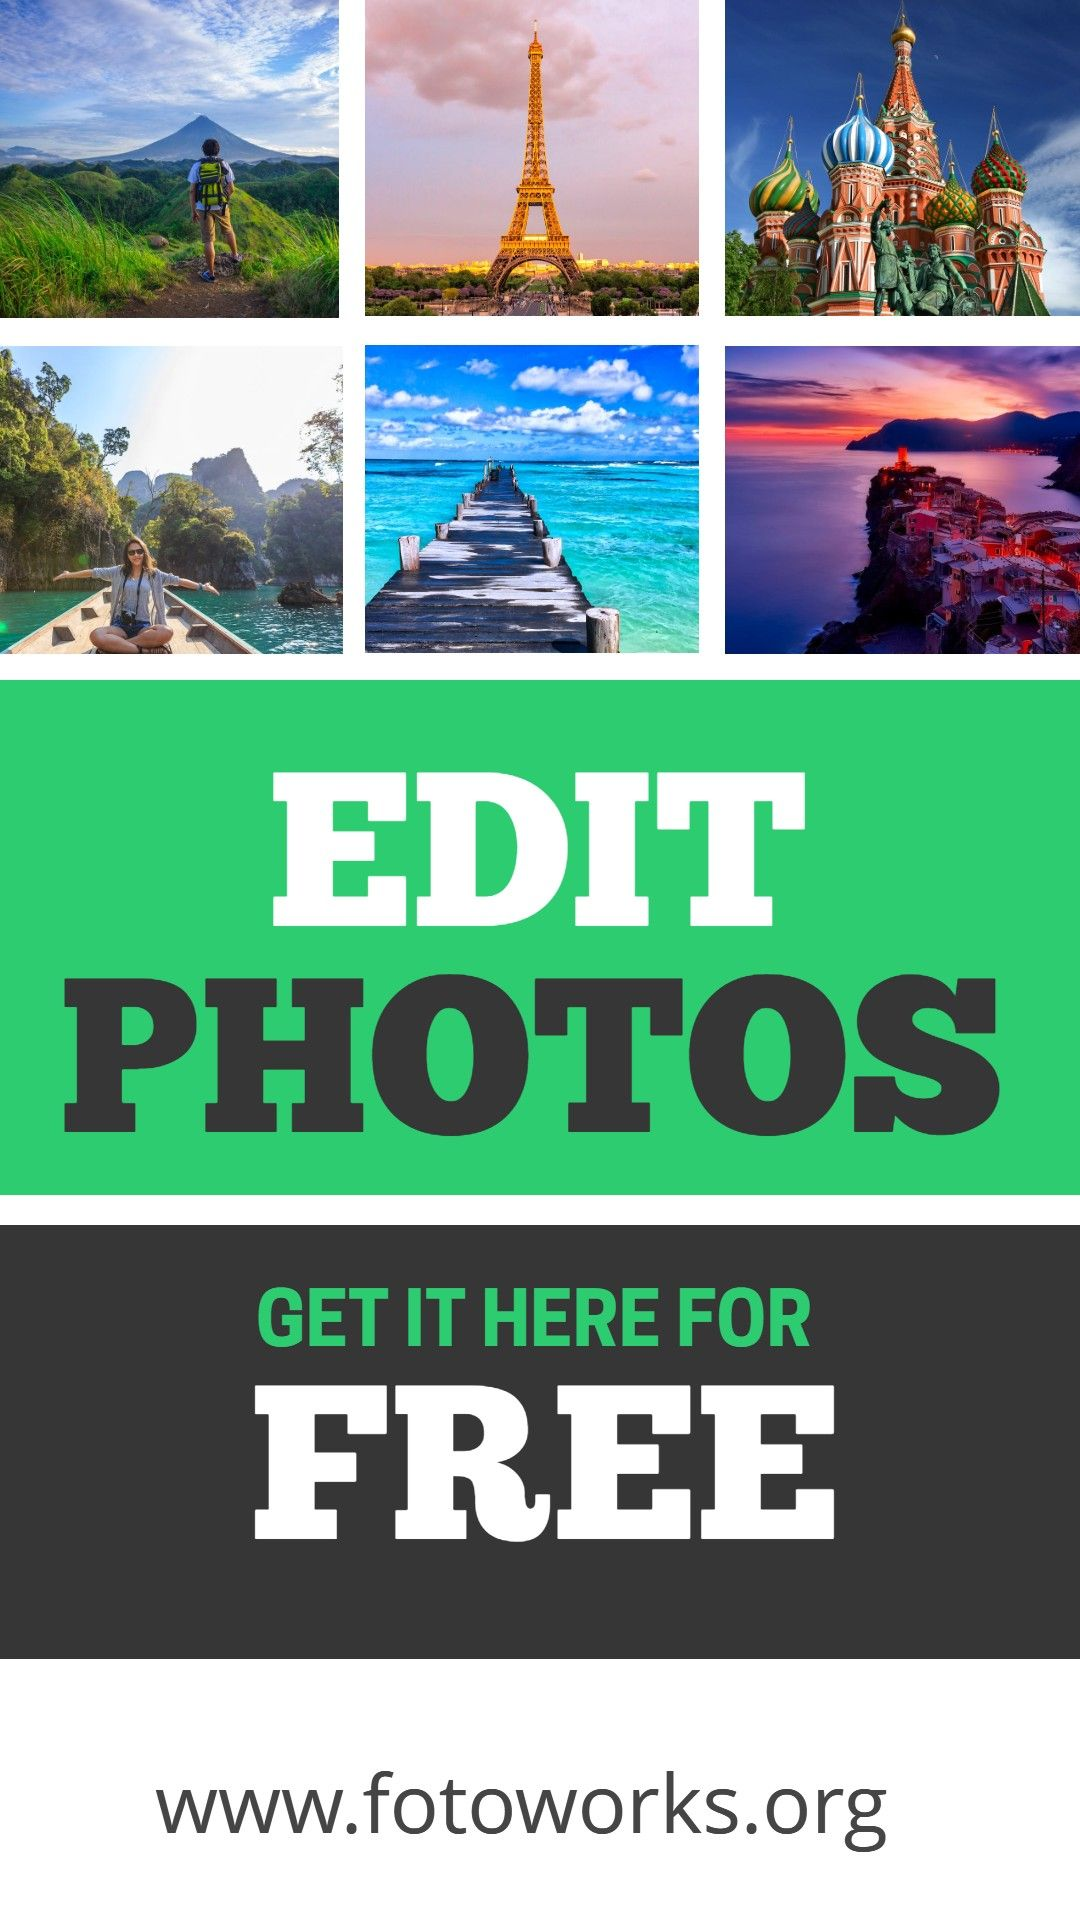 With Fotoworks XL it is very easy to edit photos.